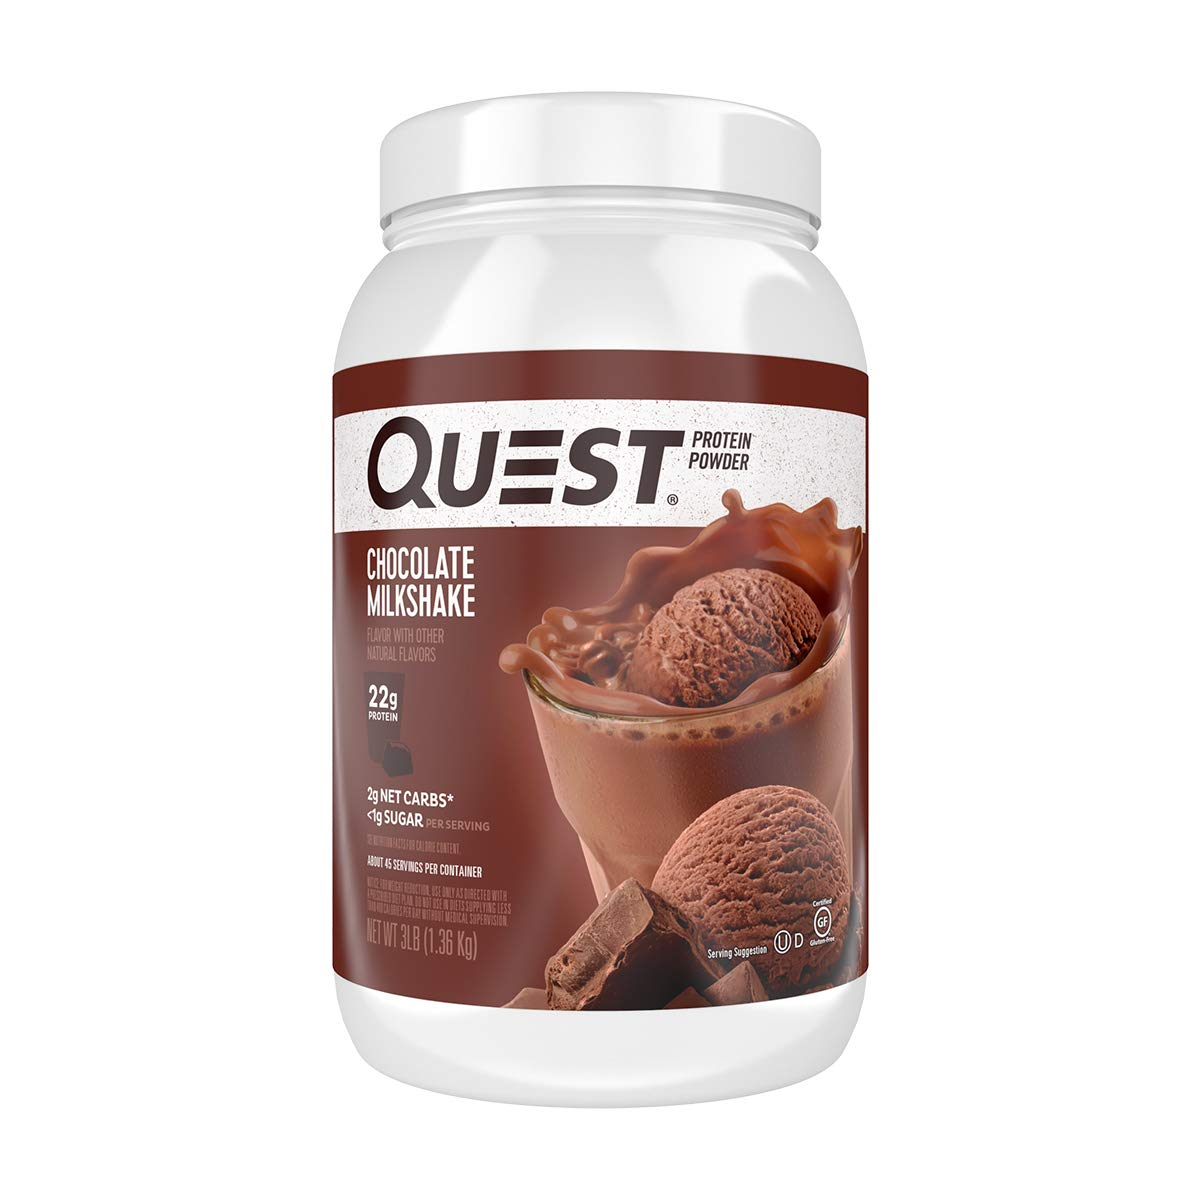 Quest Nutrition Chocolate Milkshake Protein Powder, High Protein, Low Carb, Gluten Free, Soy Free, 3 Pound by Quest Nutrition